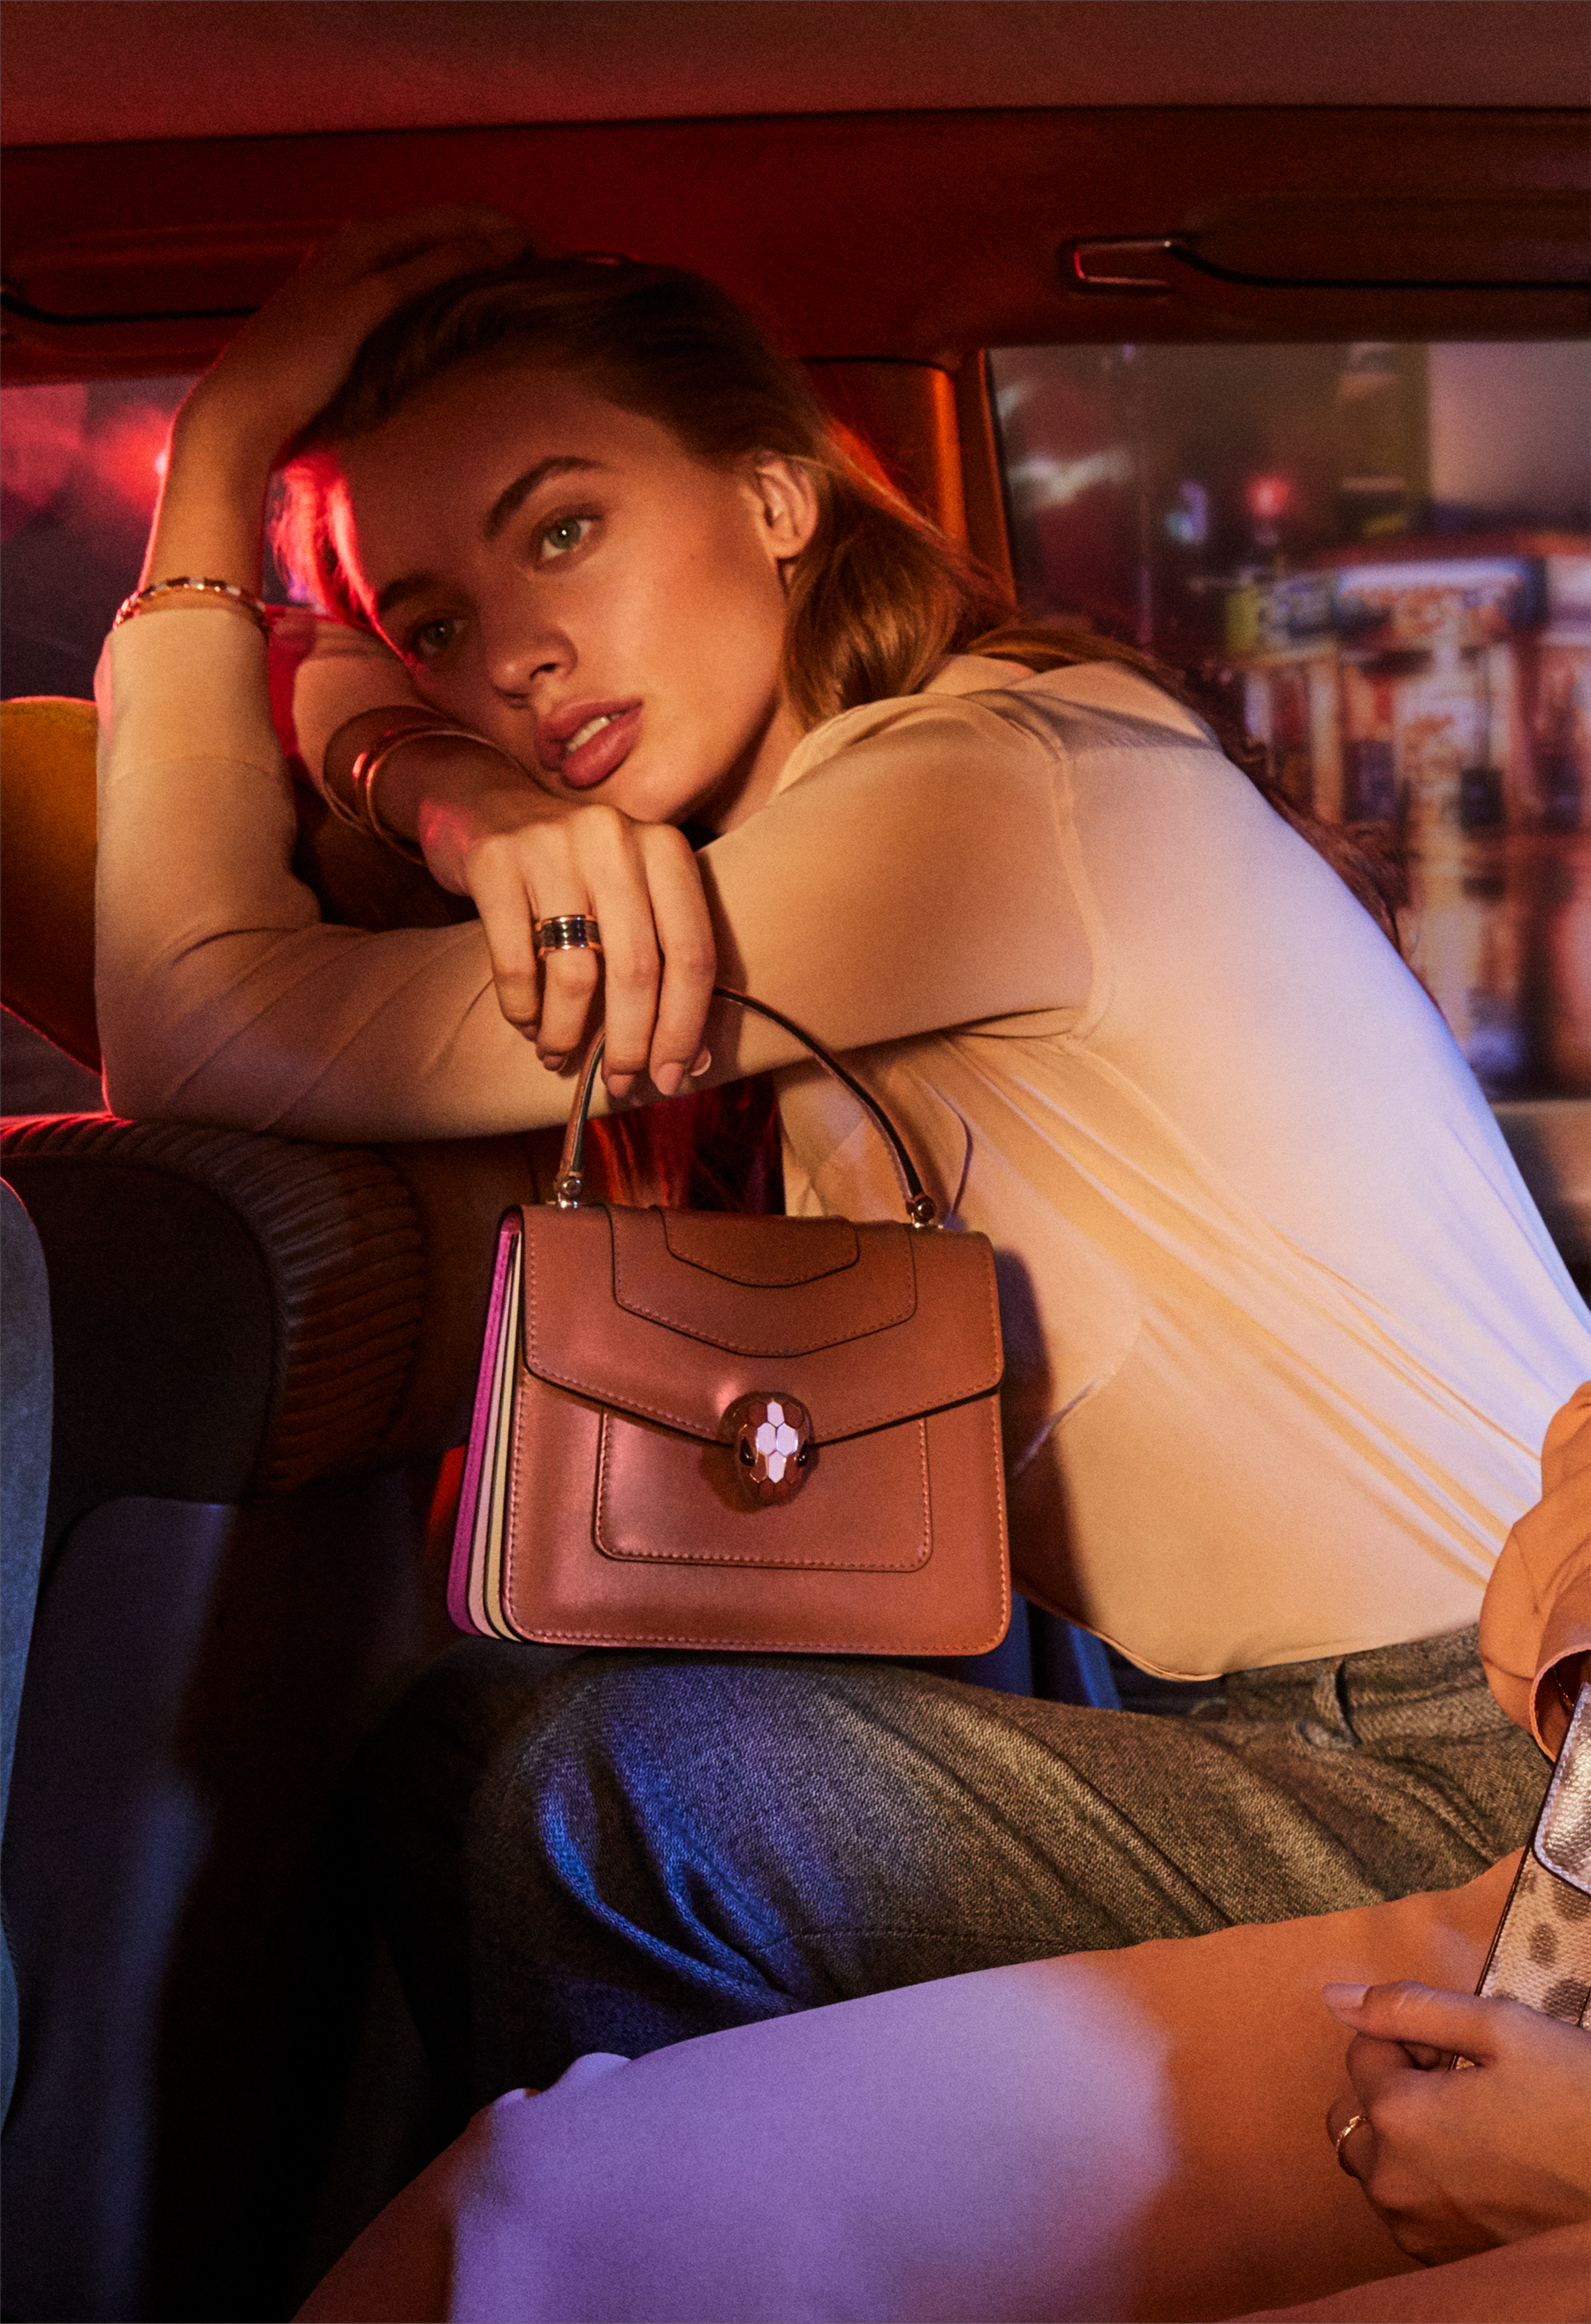 Serpenti Forever crossbody bag in imperial topaz calf leather with Roman garnet, rosa di francia and white agate calf leather sides. Iconic snakehead closure in light gold plated brass embellished with imperial topaz and rosa di francia enamel and black onyx eyes. 288889 image 6